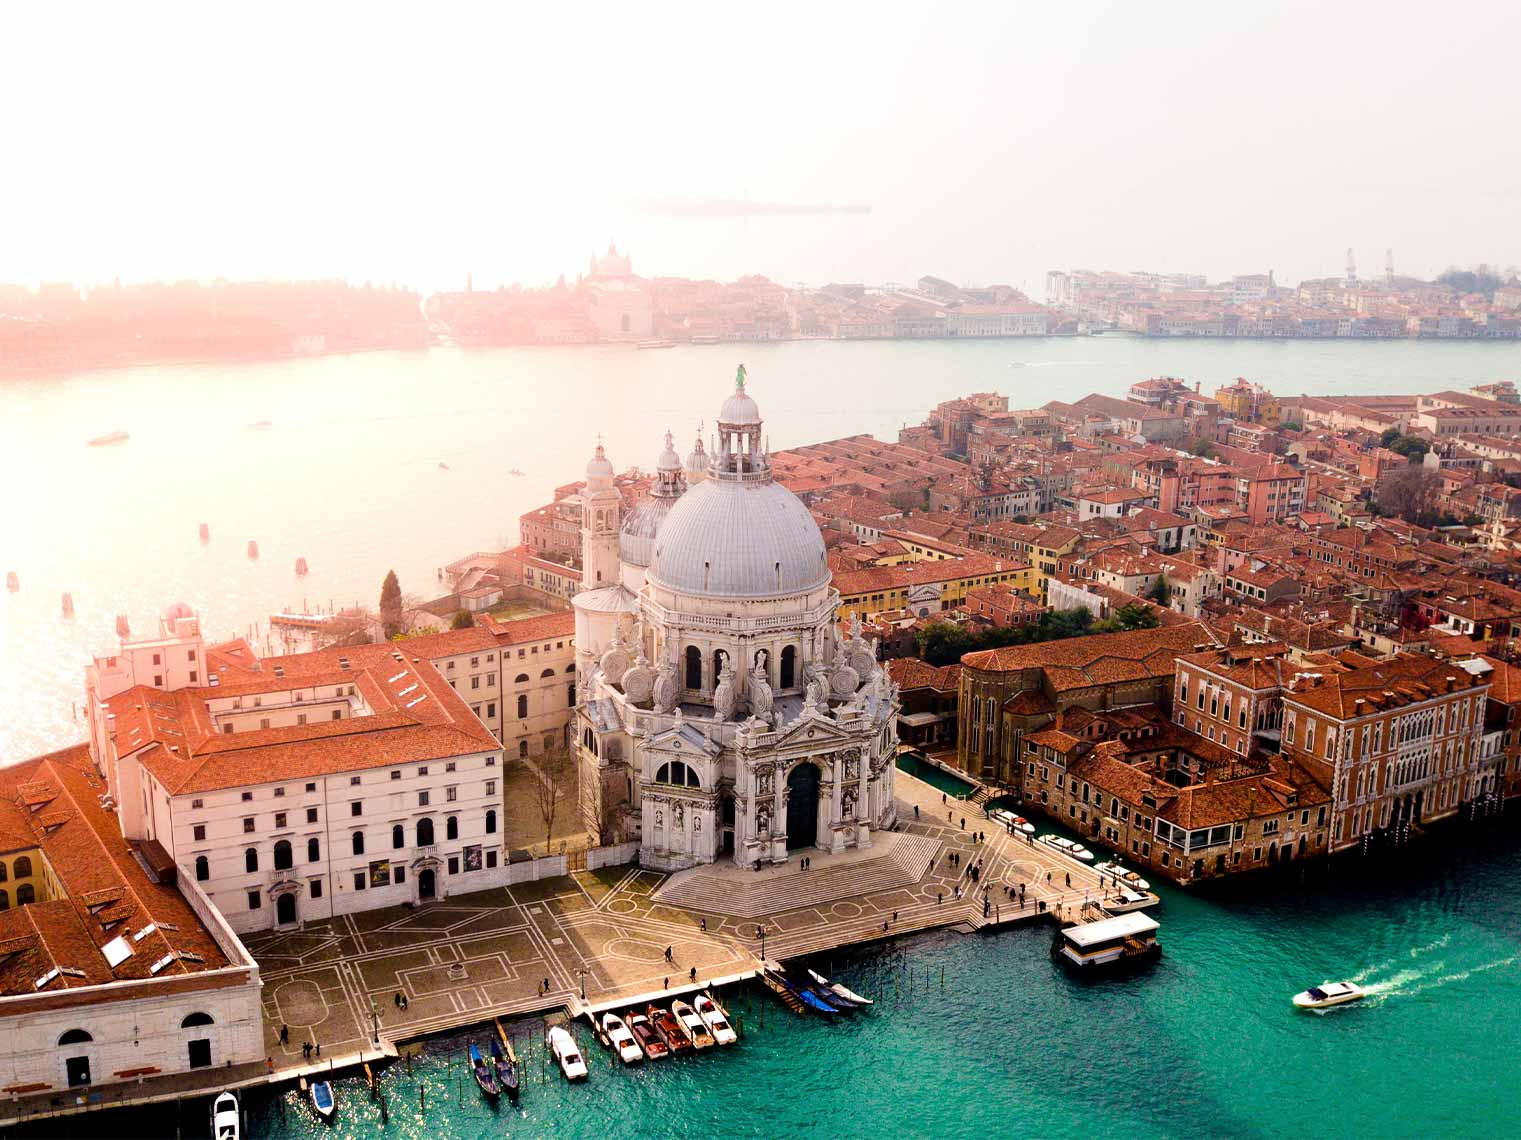 Venice looking gorgeous in the sun.